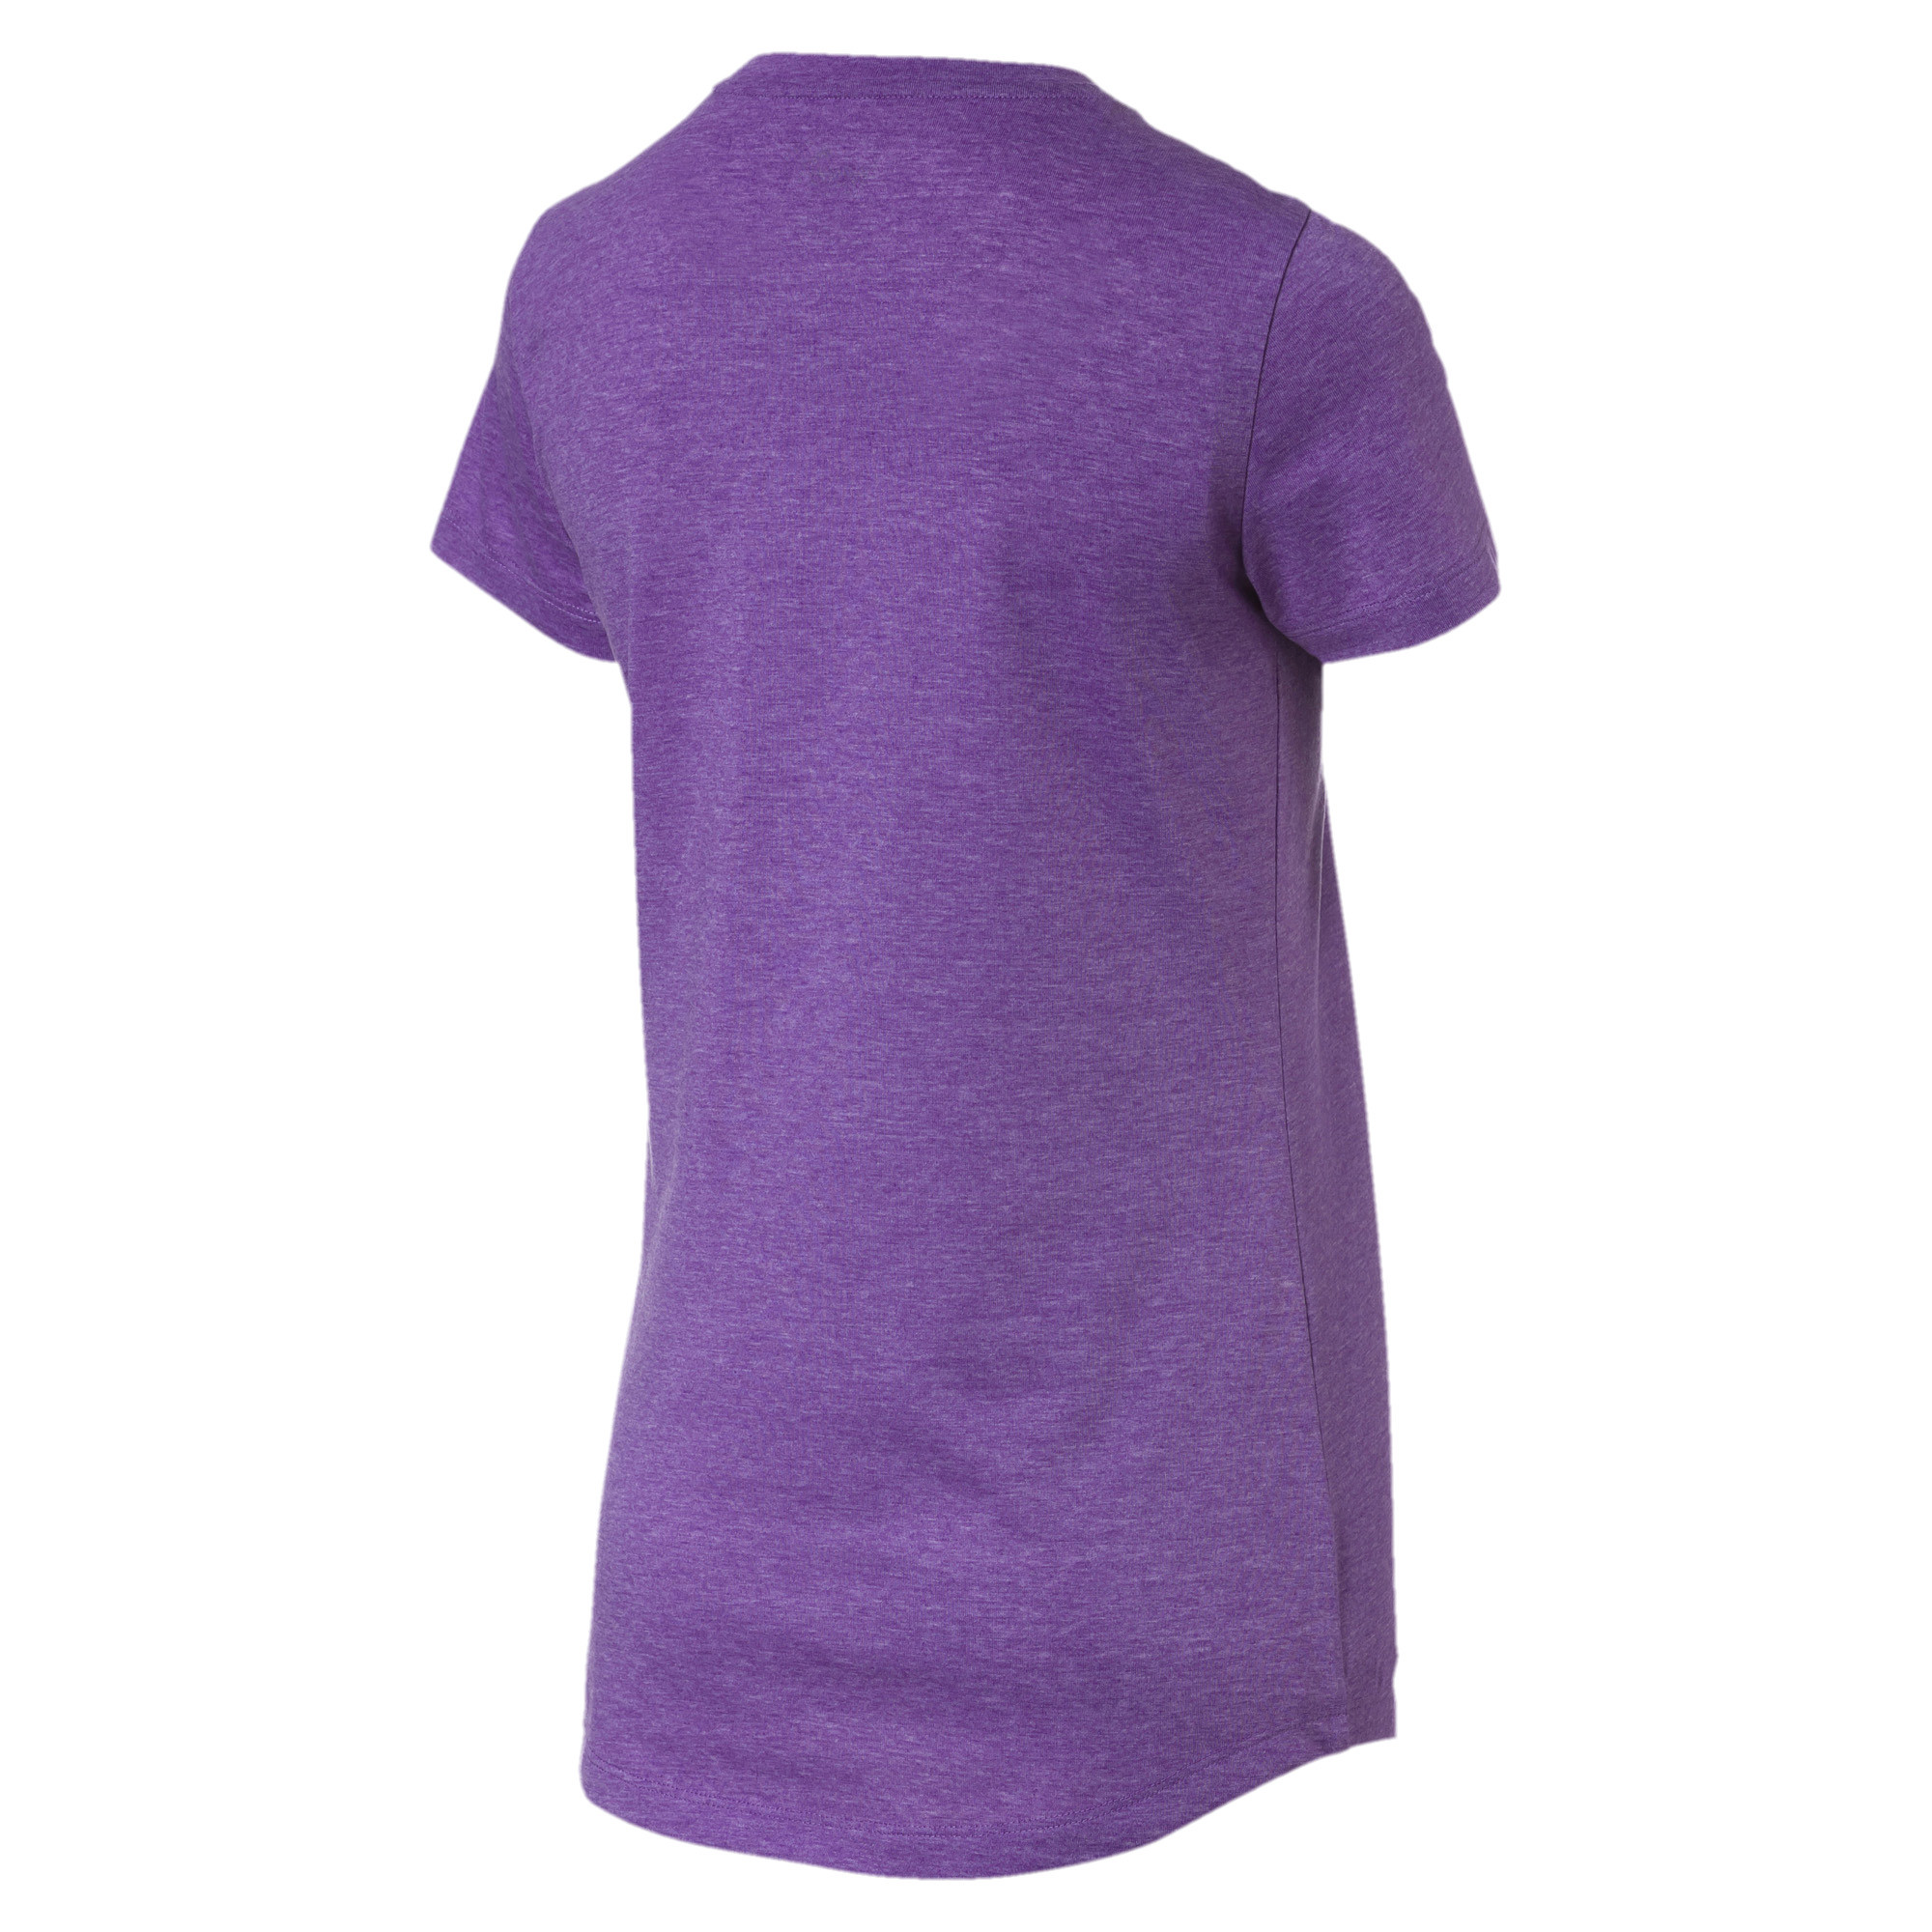 PUMA-Essentials-Women-039-s-Heather-Tee-Women-Tee-Basics thumbnail 33